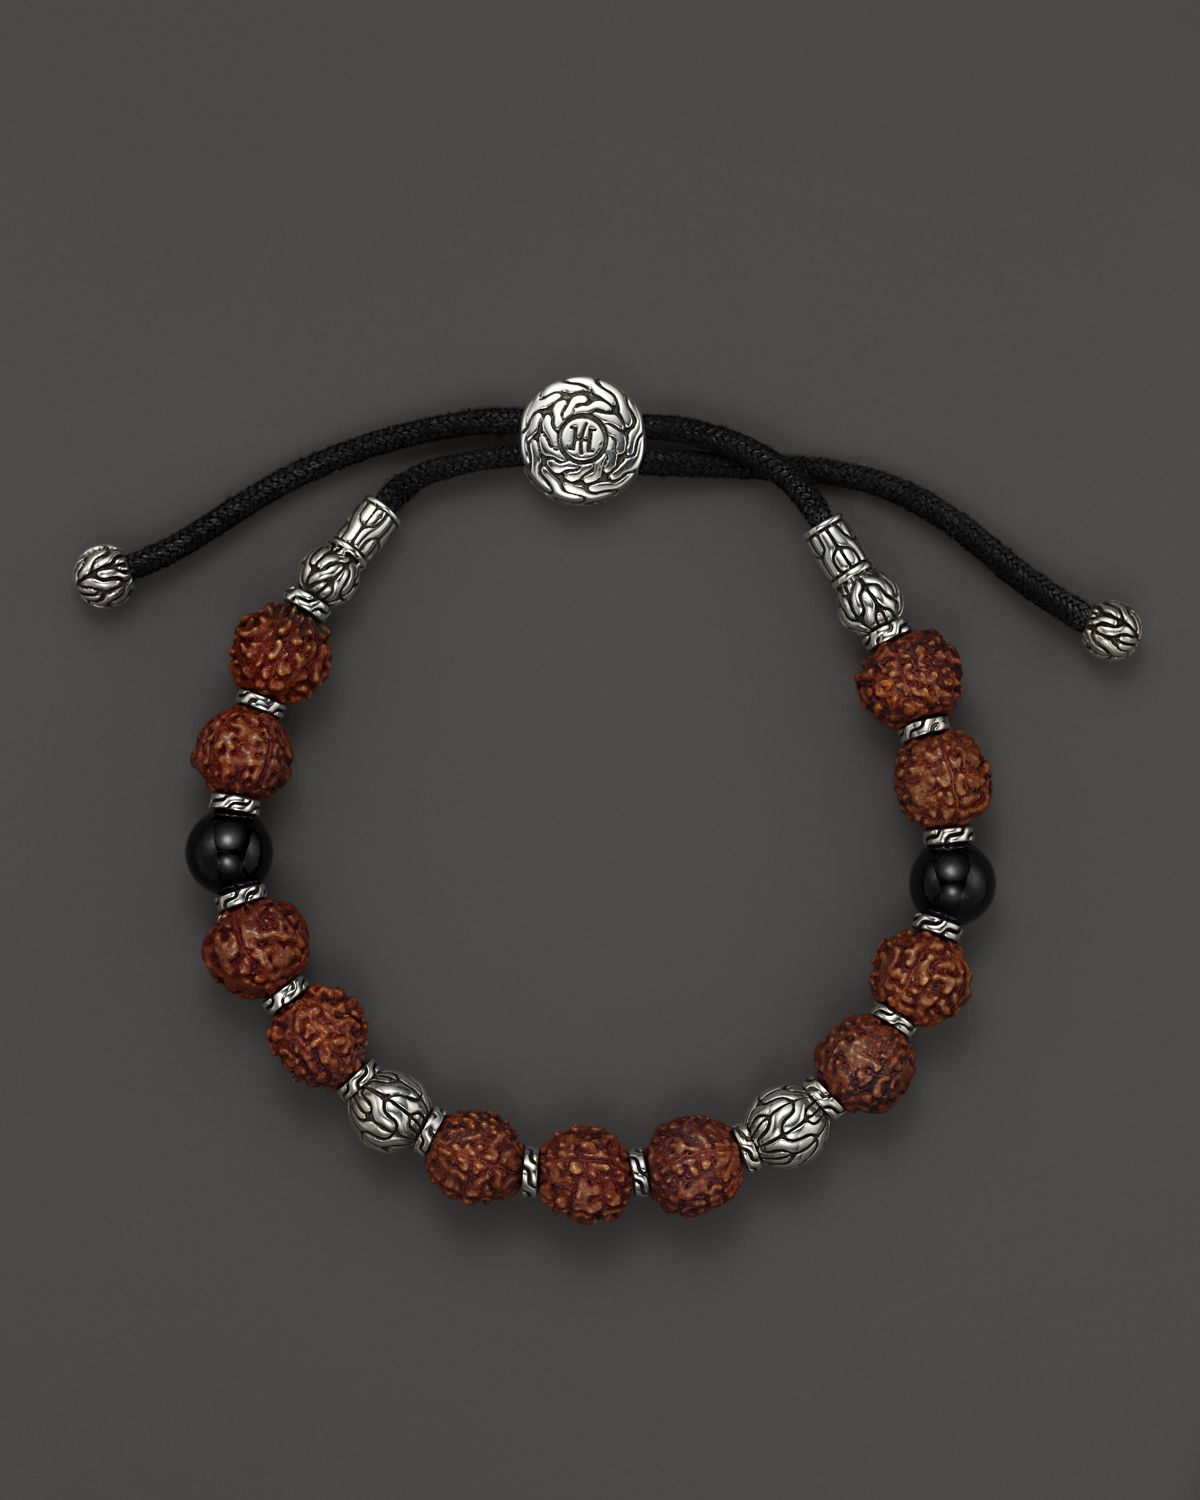 BEAD BRACELETS. Look no further than our collection of men's bead bracelets for that rocker, biker and celebrity style. Tribal Hollywood carries the best selection of bead bracelets for men, including silver bead bracelets, black beaded bracelets, and cross and skull bead mens bracelet styles.